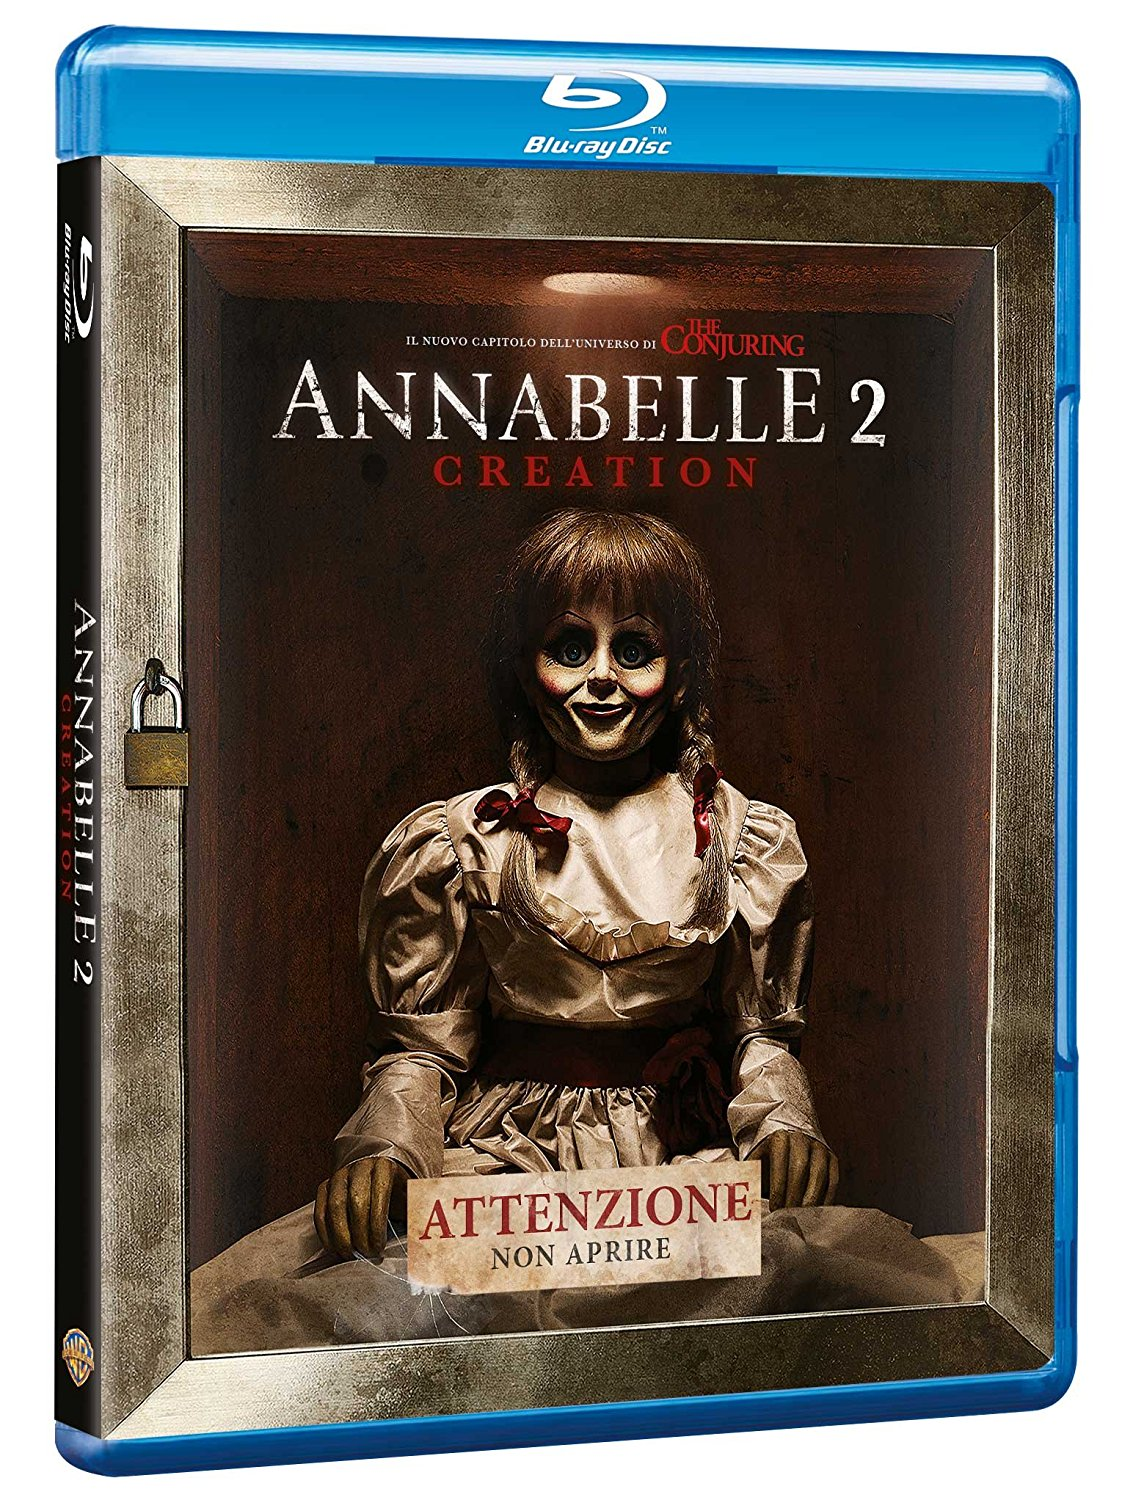 ANNABELLE 2: CREATION - BLU RAY